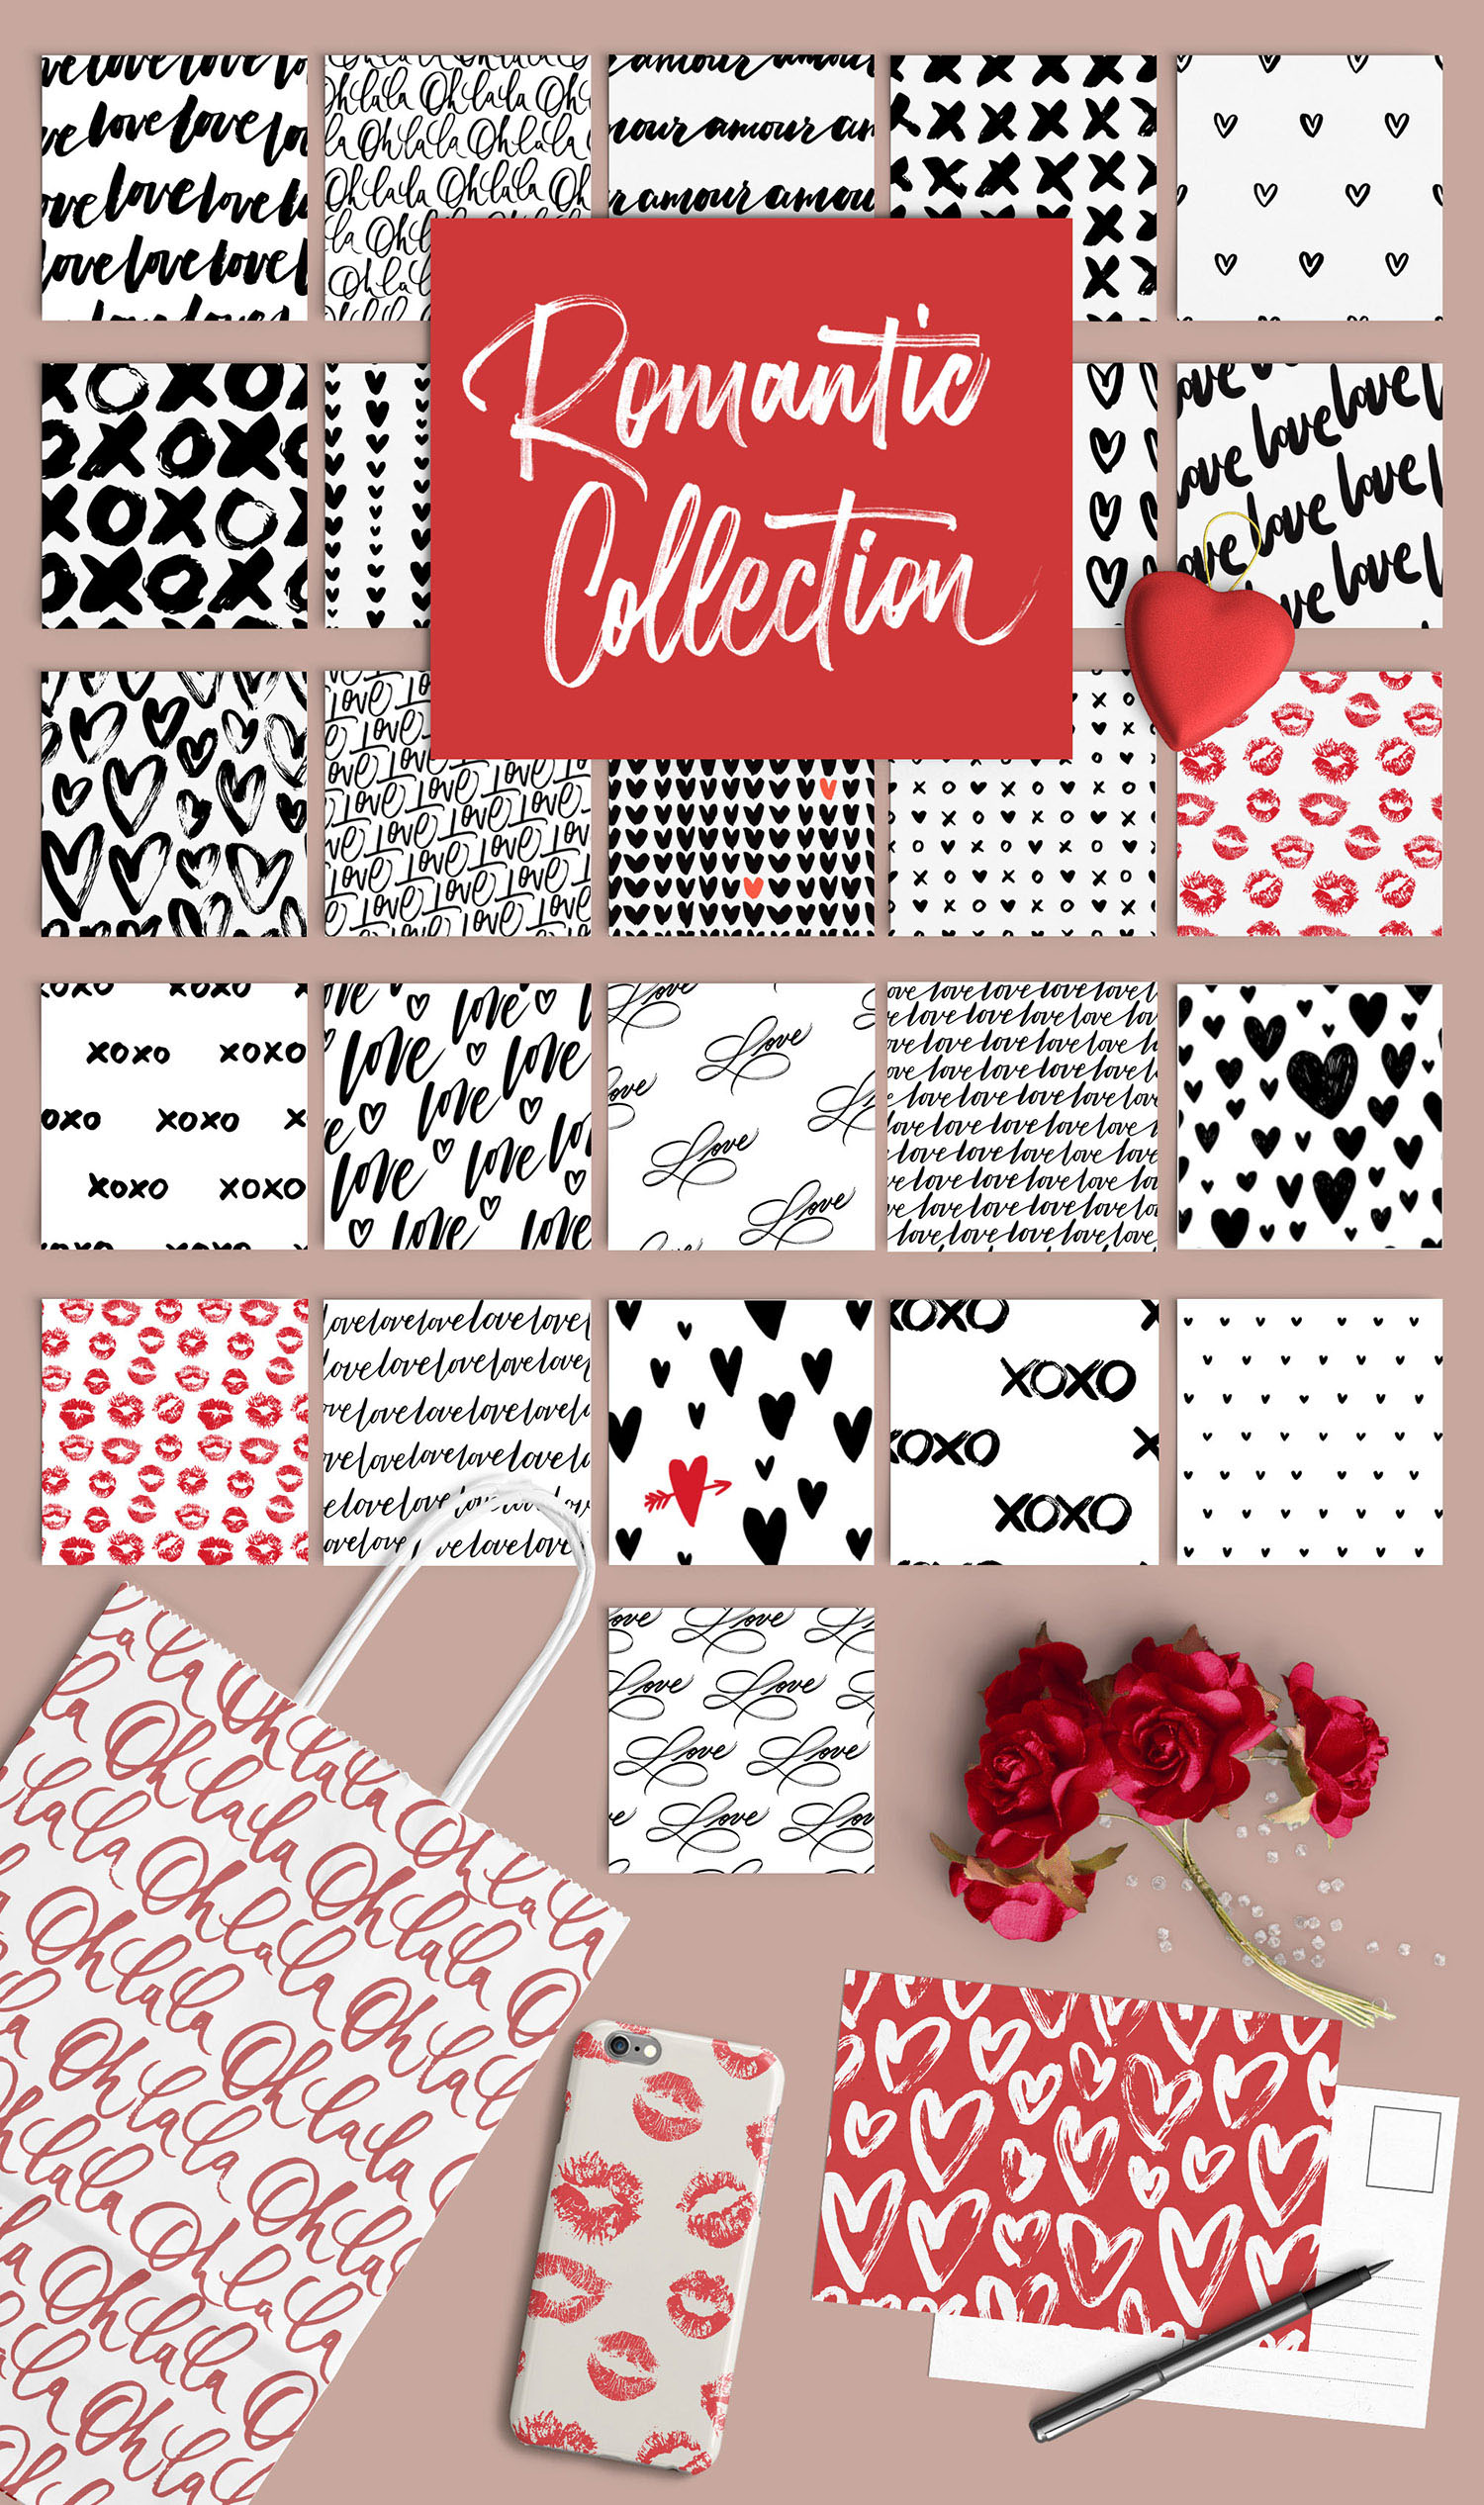 romantic_collection_cover-web.jpg